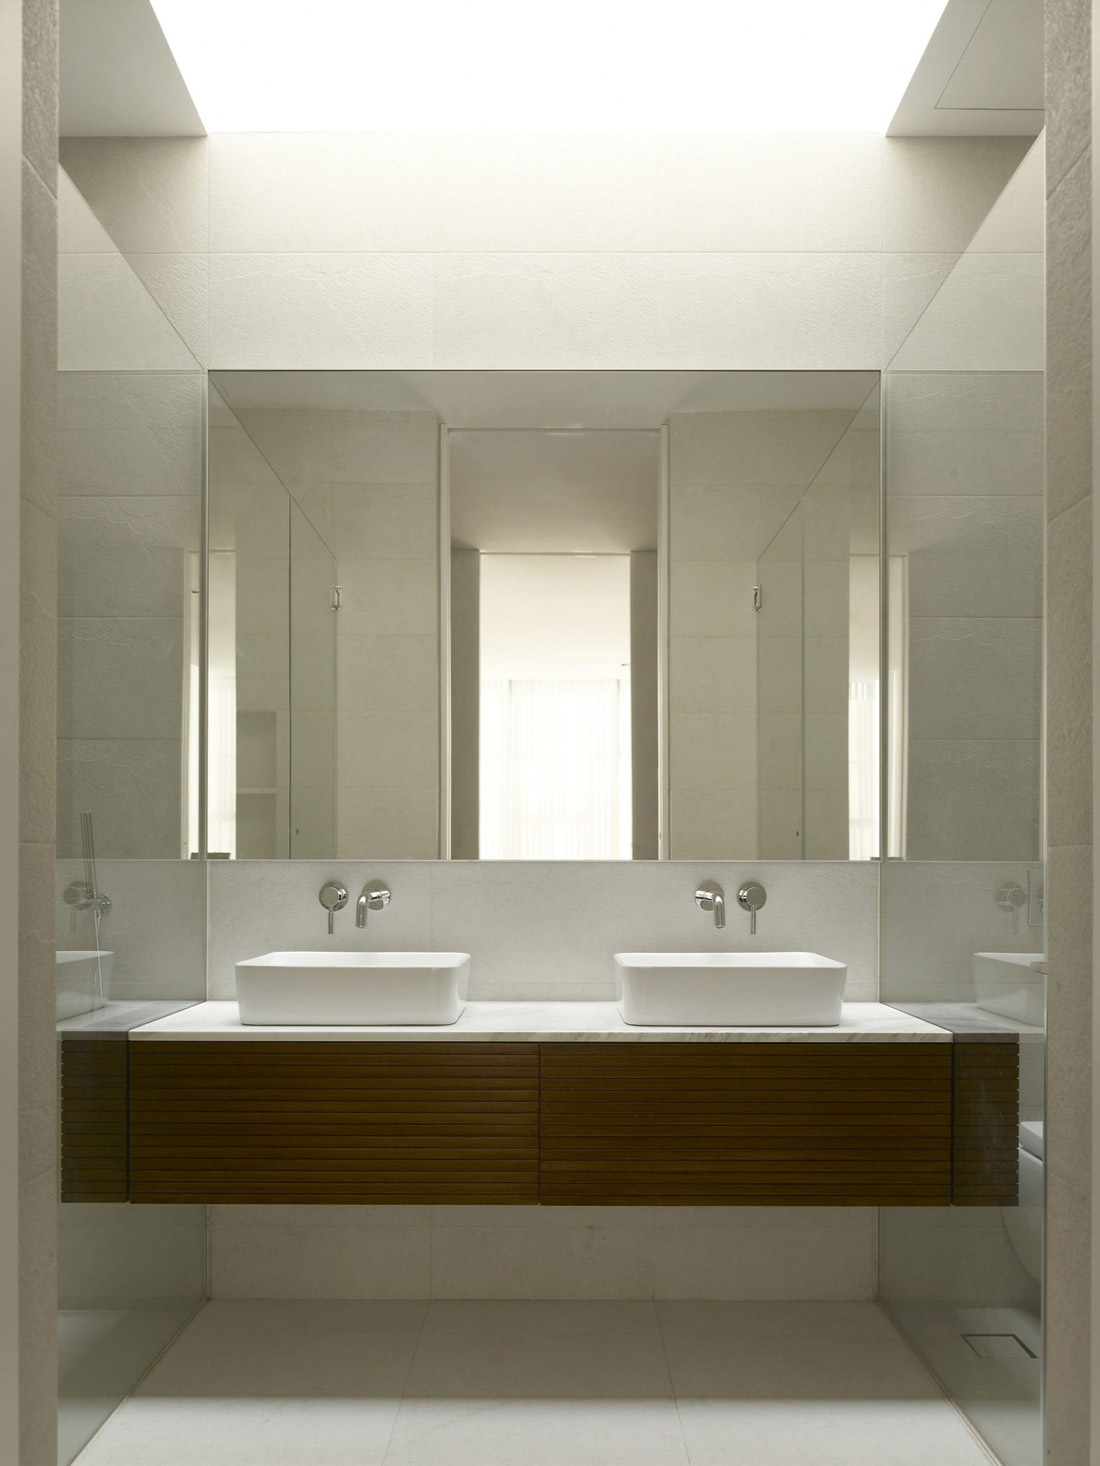 Twin Sinks Minimalist Contemporary Home In Singapore - Designer bathroom sinks singapore